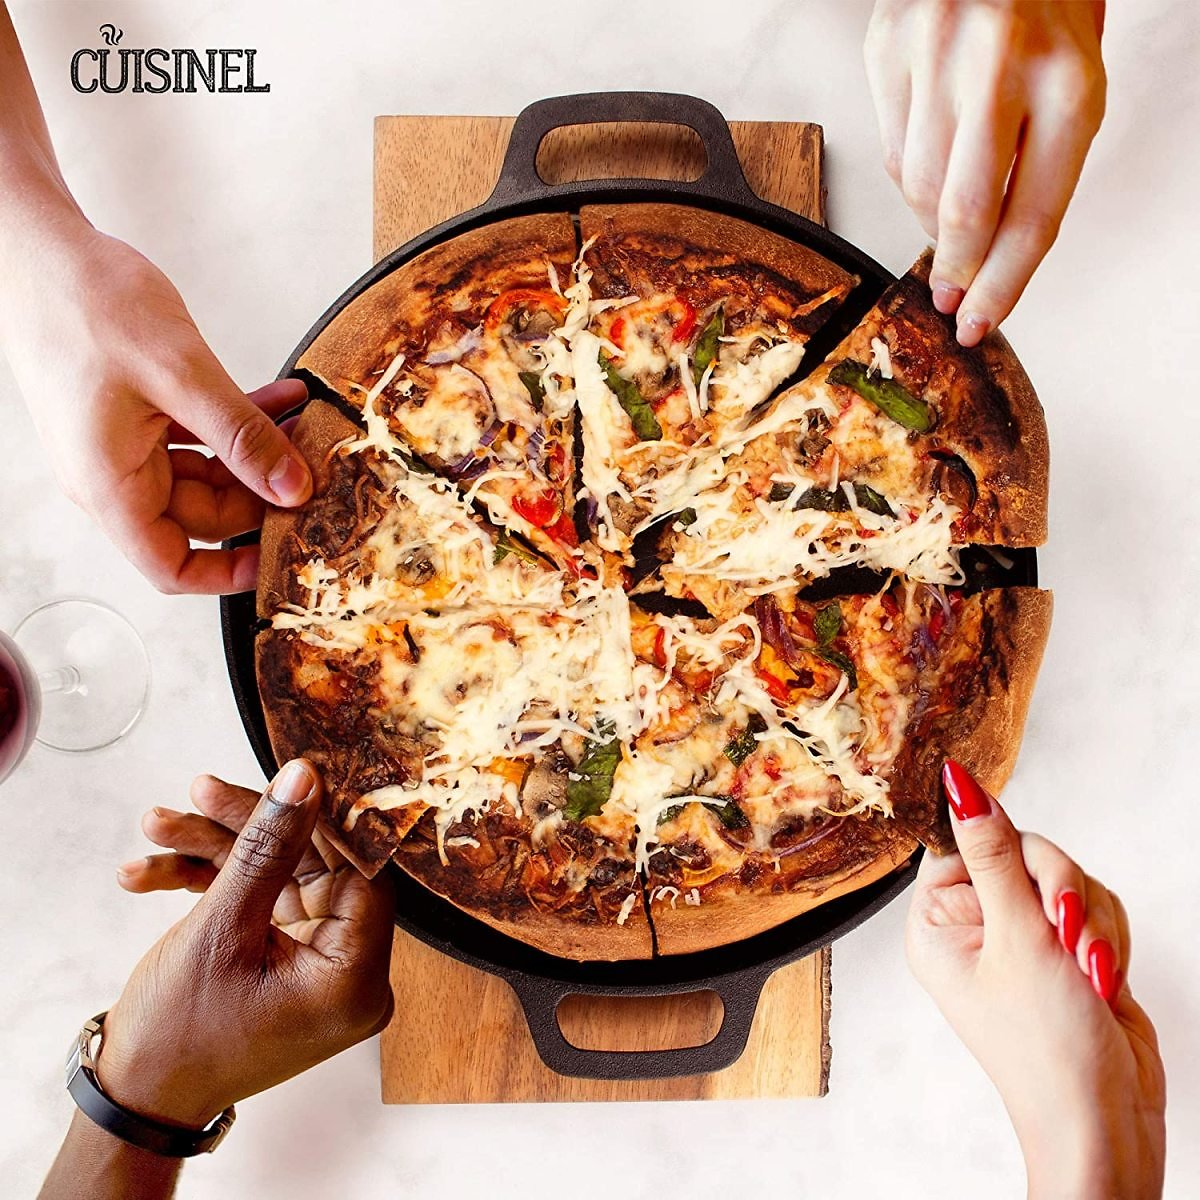 Cuisinel Cast Iron Pre-Seasoned Pizza Pan